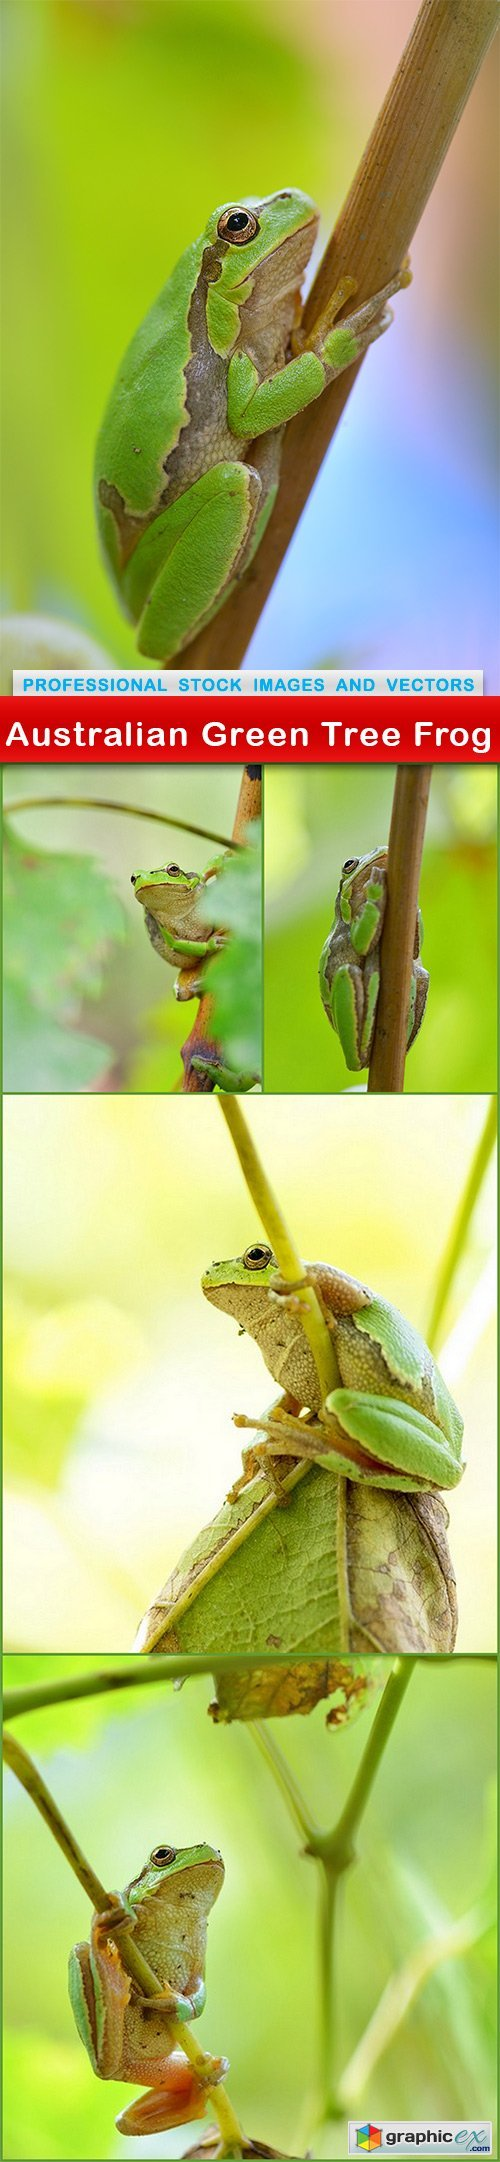 Australian Green Tree Frog - 5 UHQ JPEG